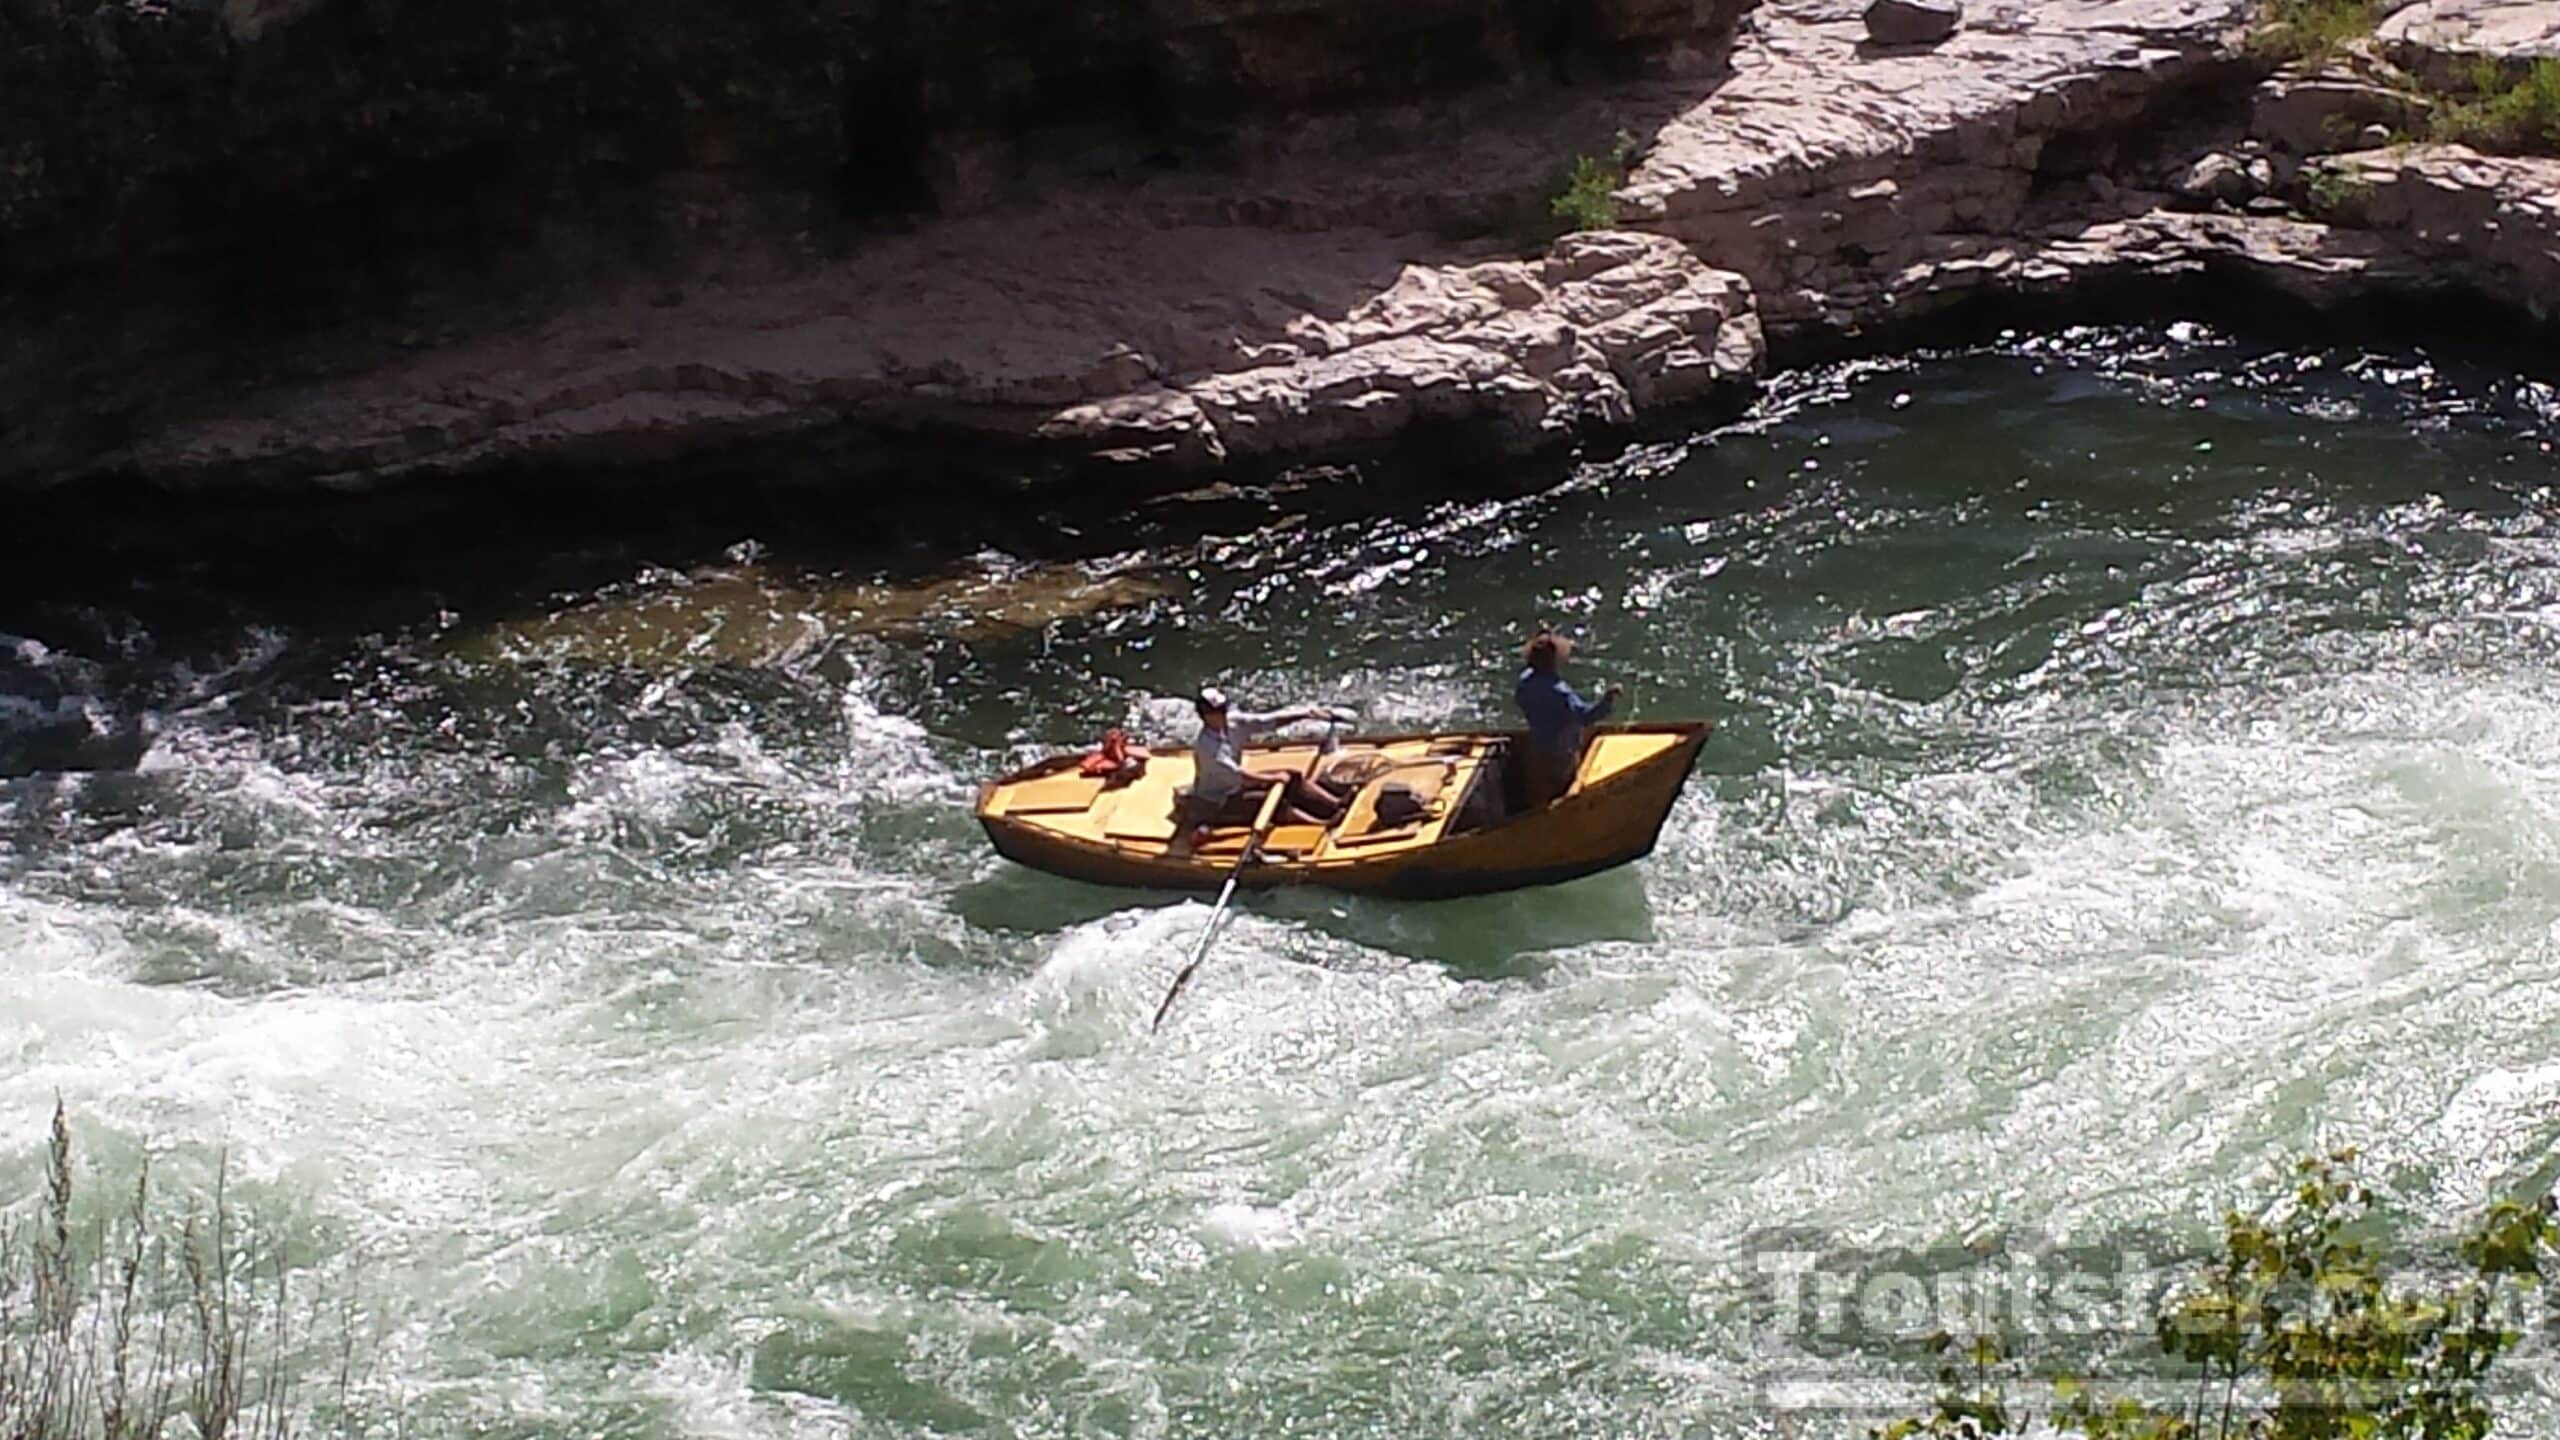 A wooden drift boat running through rapids